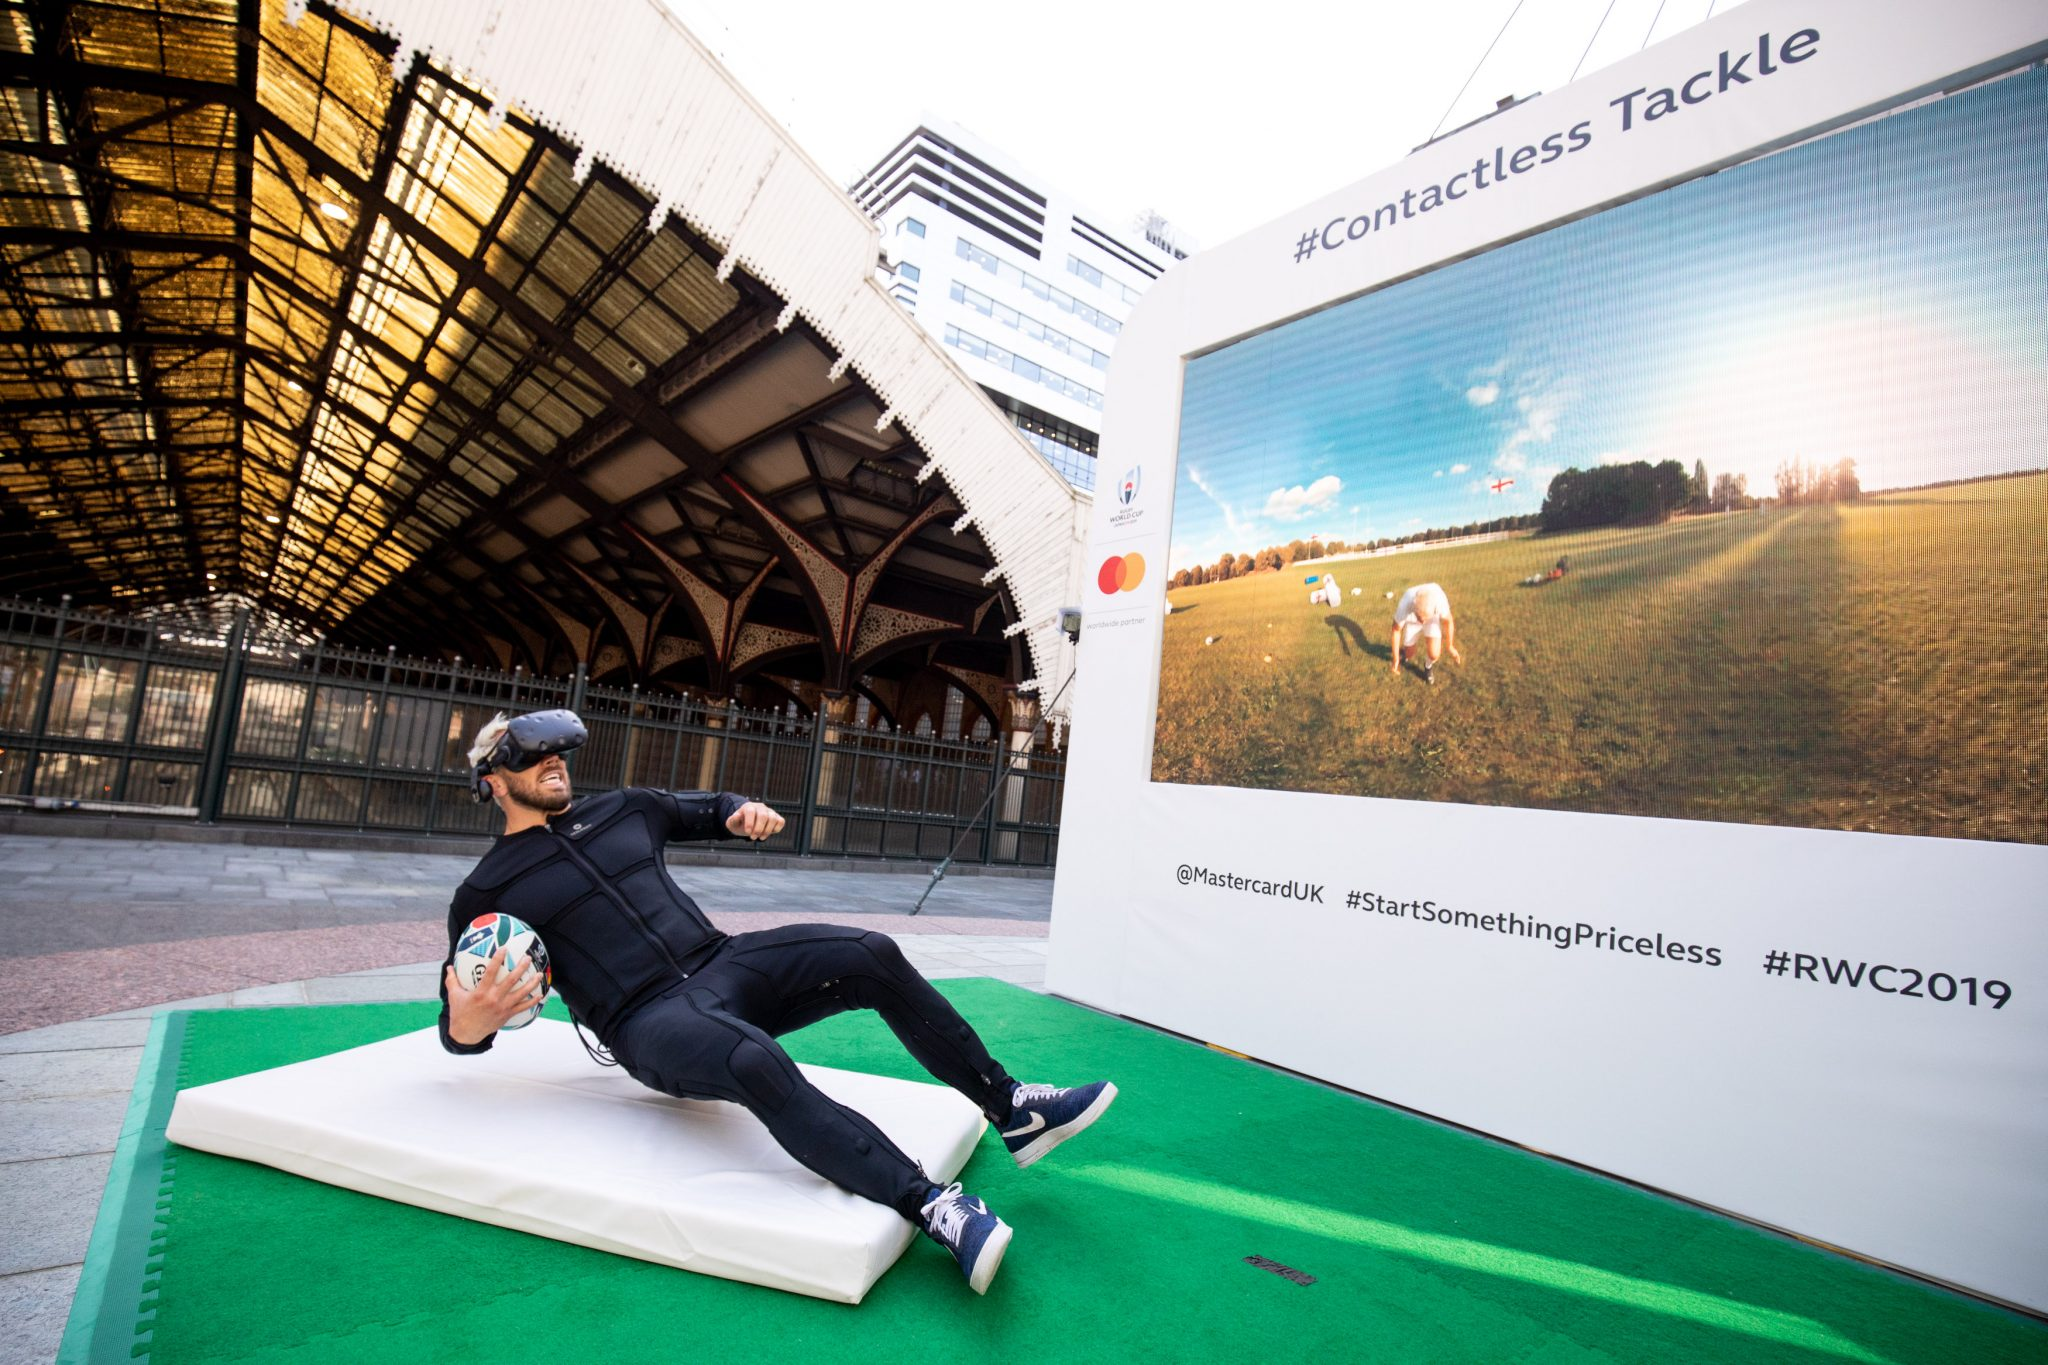 Chris Robshaw  Ahead of the Rugby World Cup 2019, Mastercard unveiled a first of its kind virtual reality (VR) tackle, allowing members of the public to experience the sensation of a professional tackle, using a haptic feedback bodysuit in a virtual reality rugby experience.